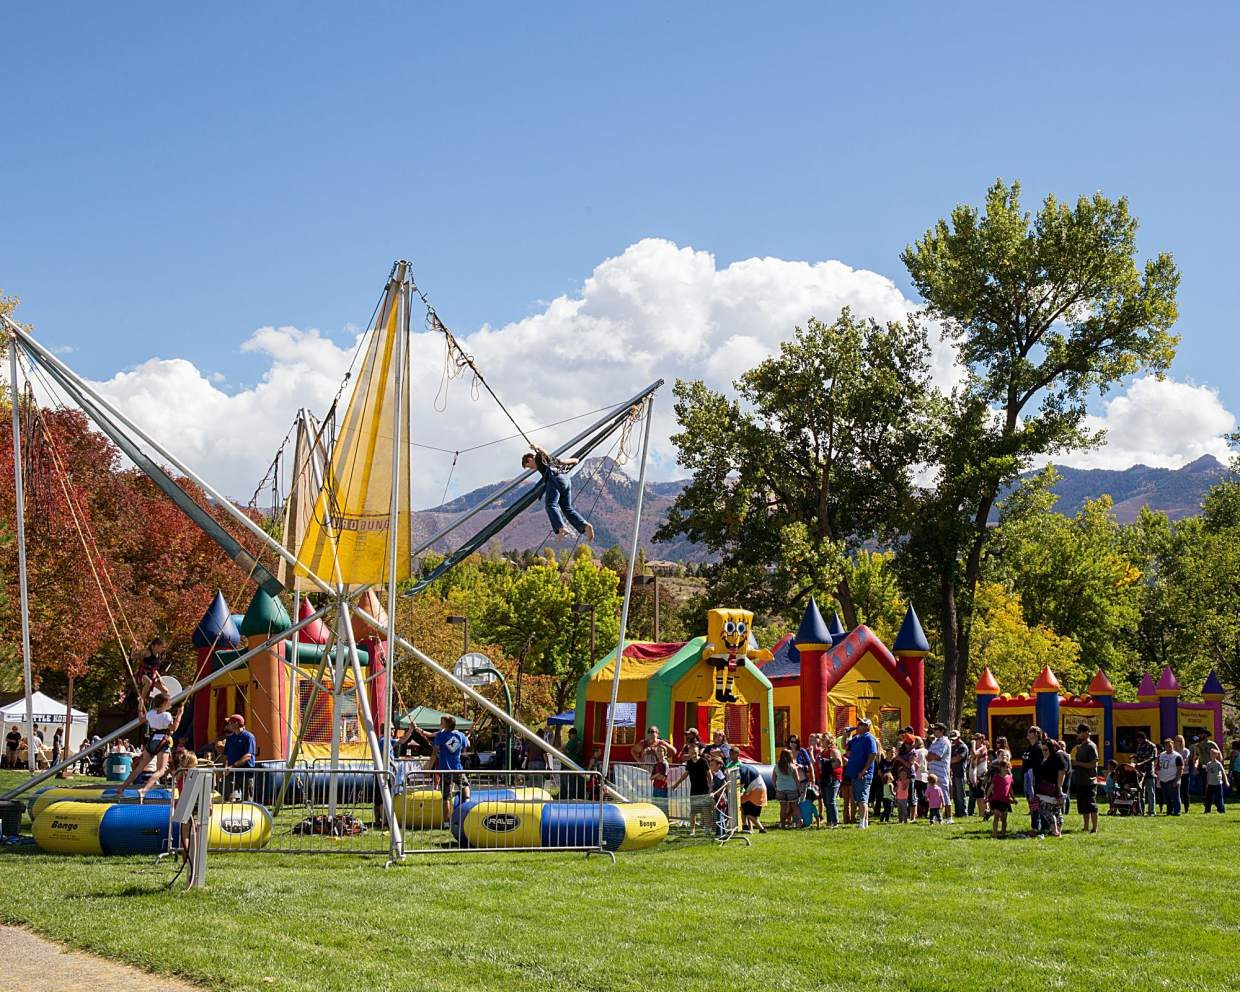 Children enjoy bounce houses and other rides in Cottonwood Park.